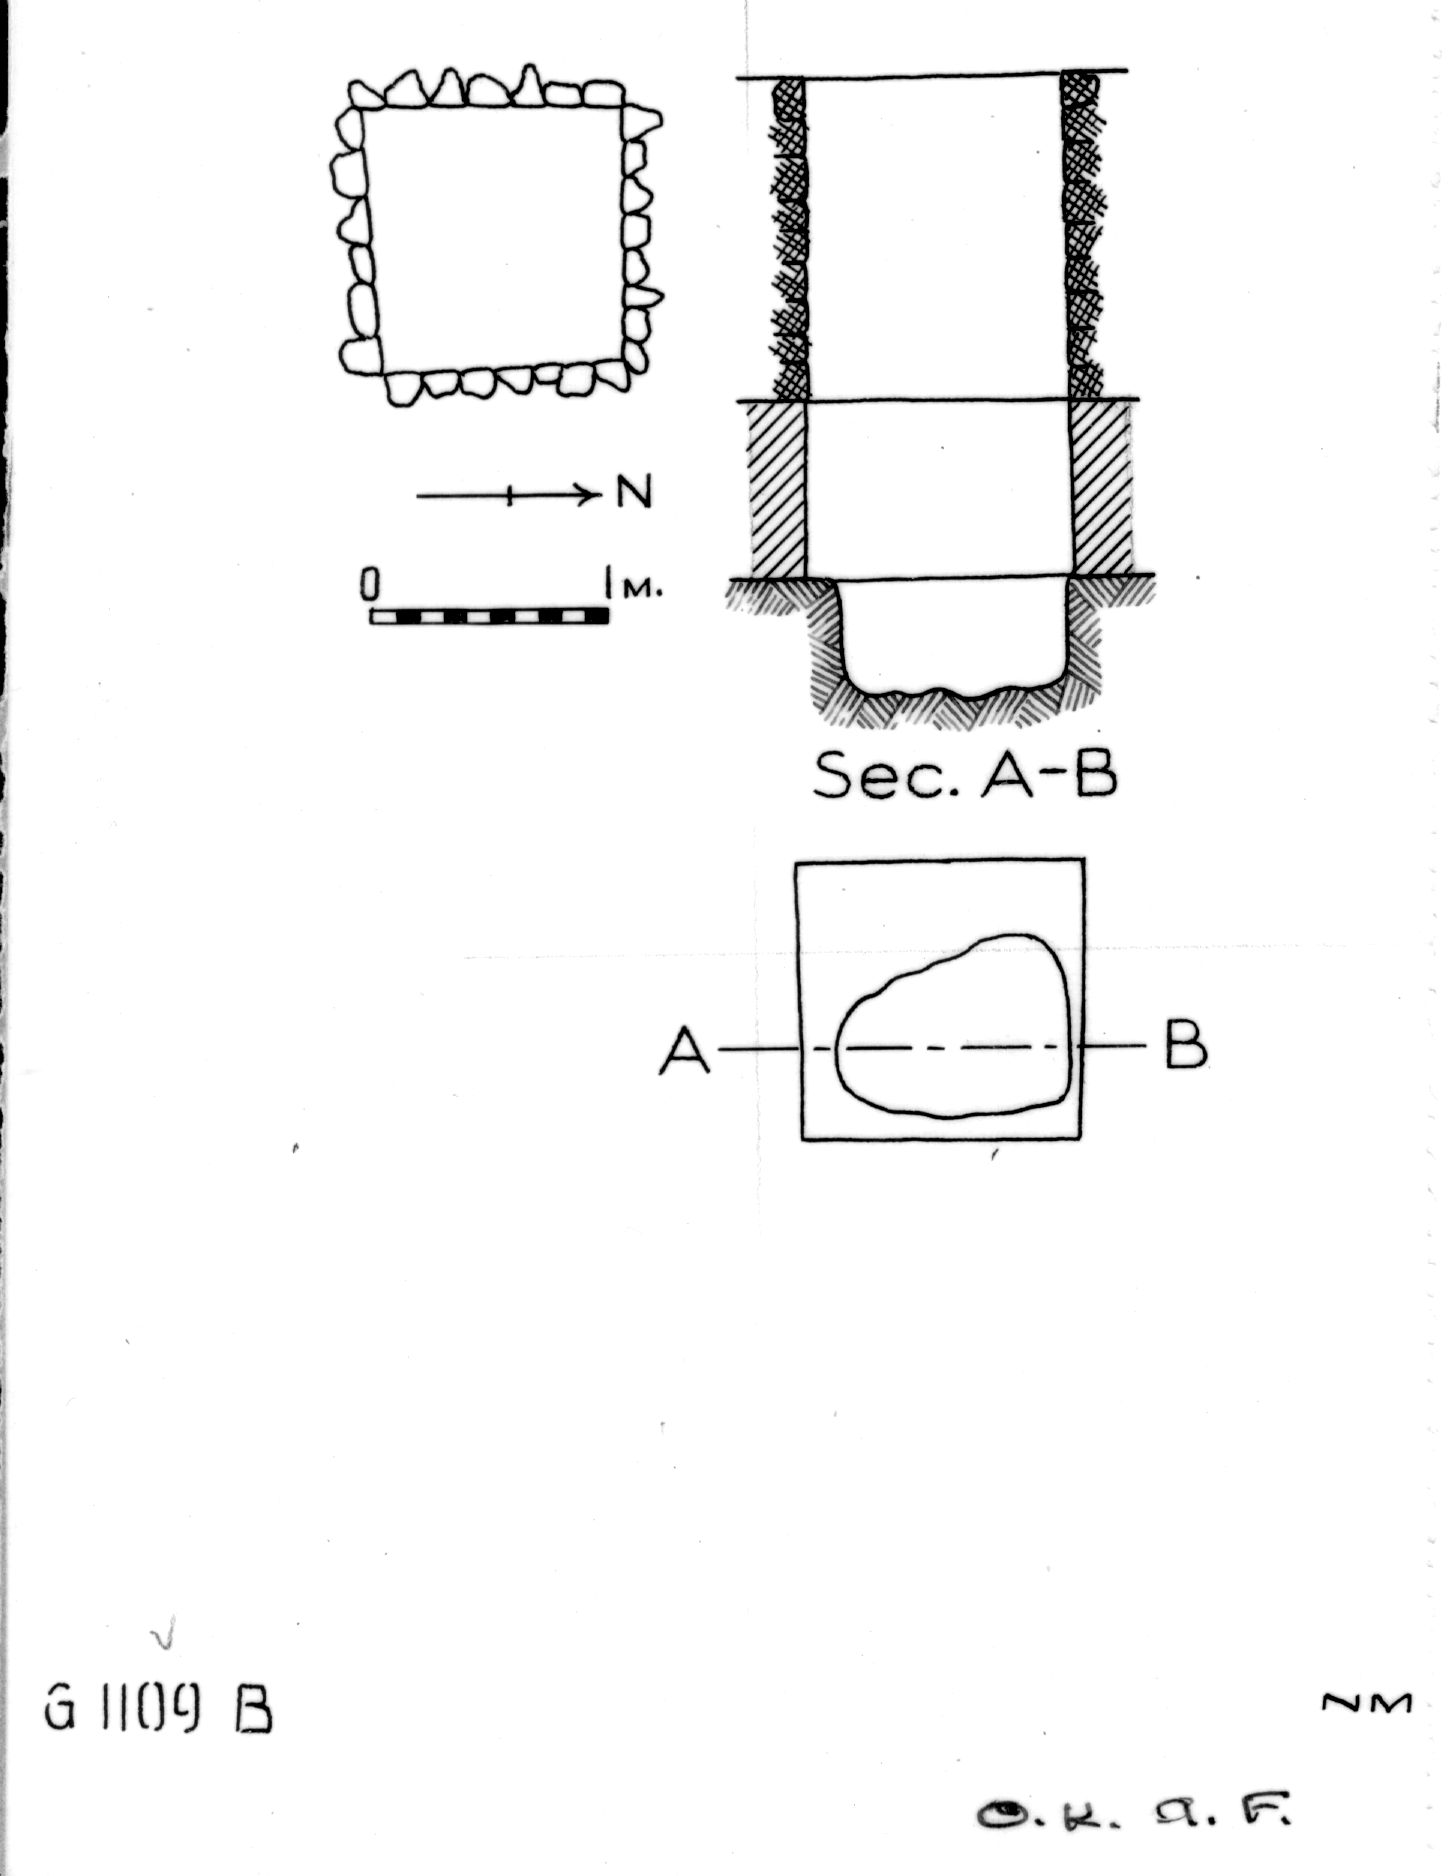 Maps and plans: G 1109, Shaft B